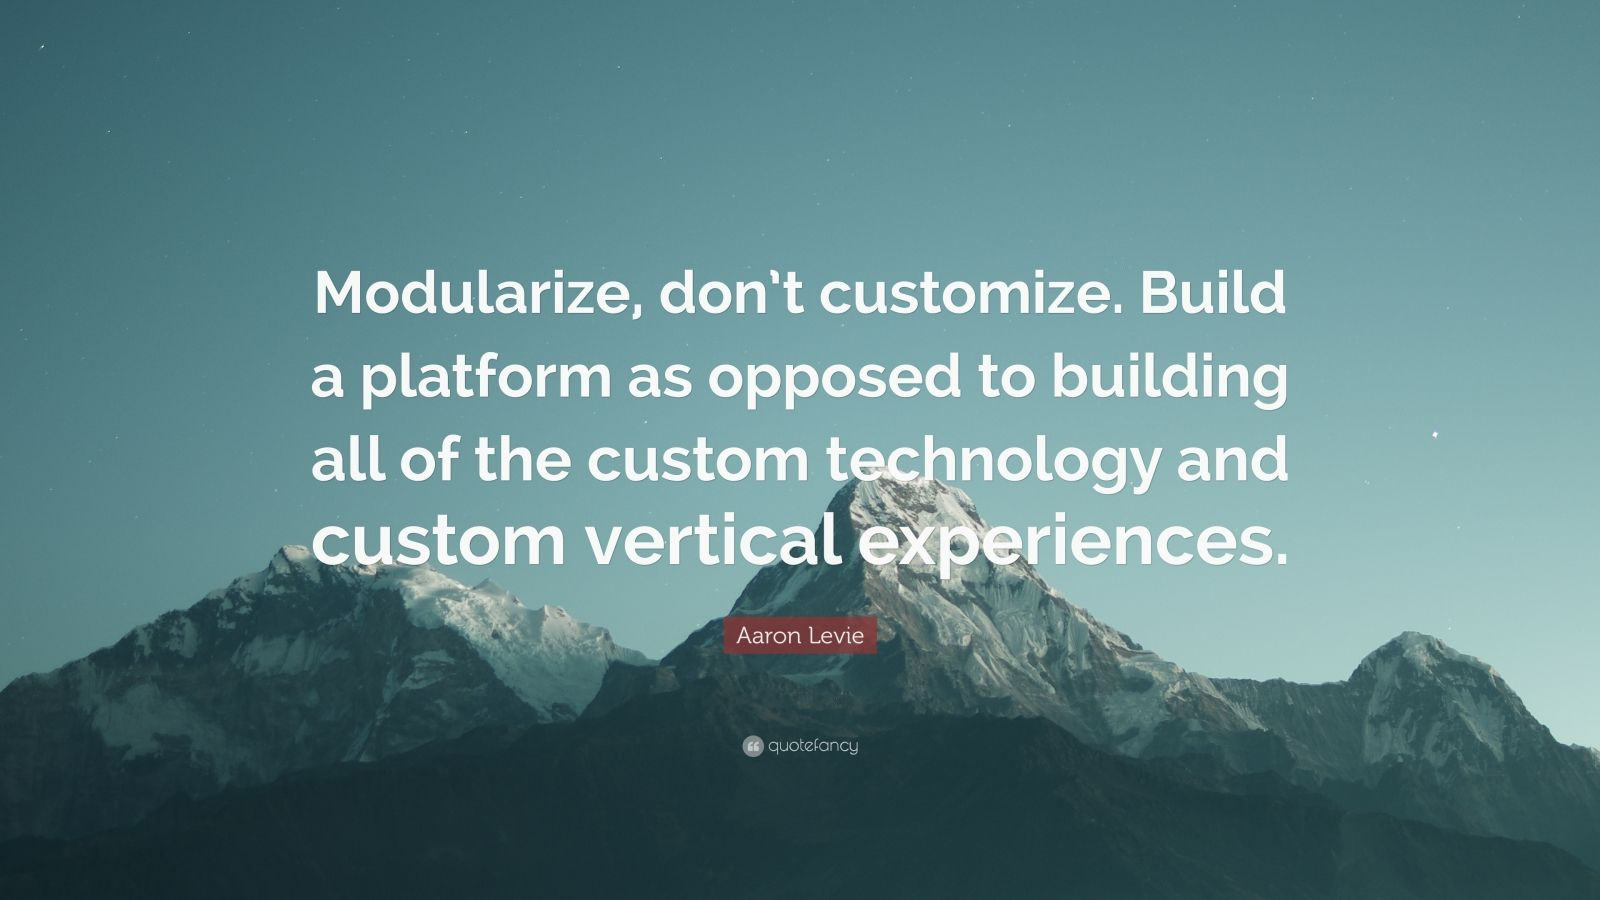 """Aaron Levie Quote: """"Modularize, don't customize. Build a platform as opposed to building all of the custom technology and custom vertical experiences."""""""